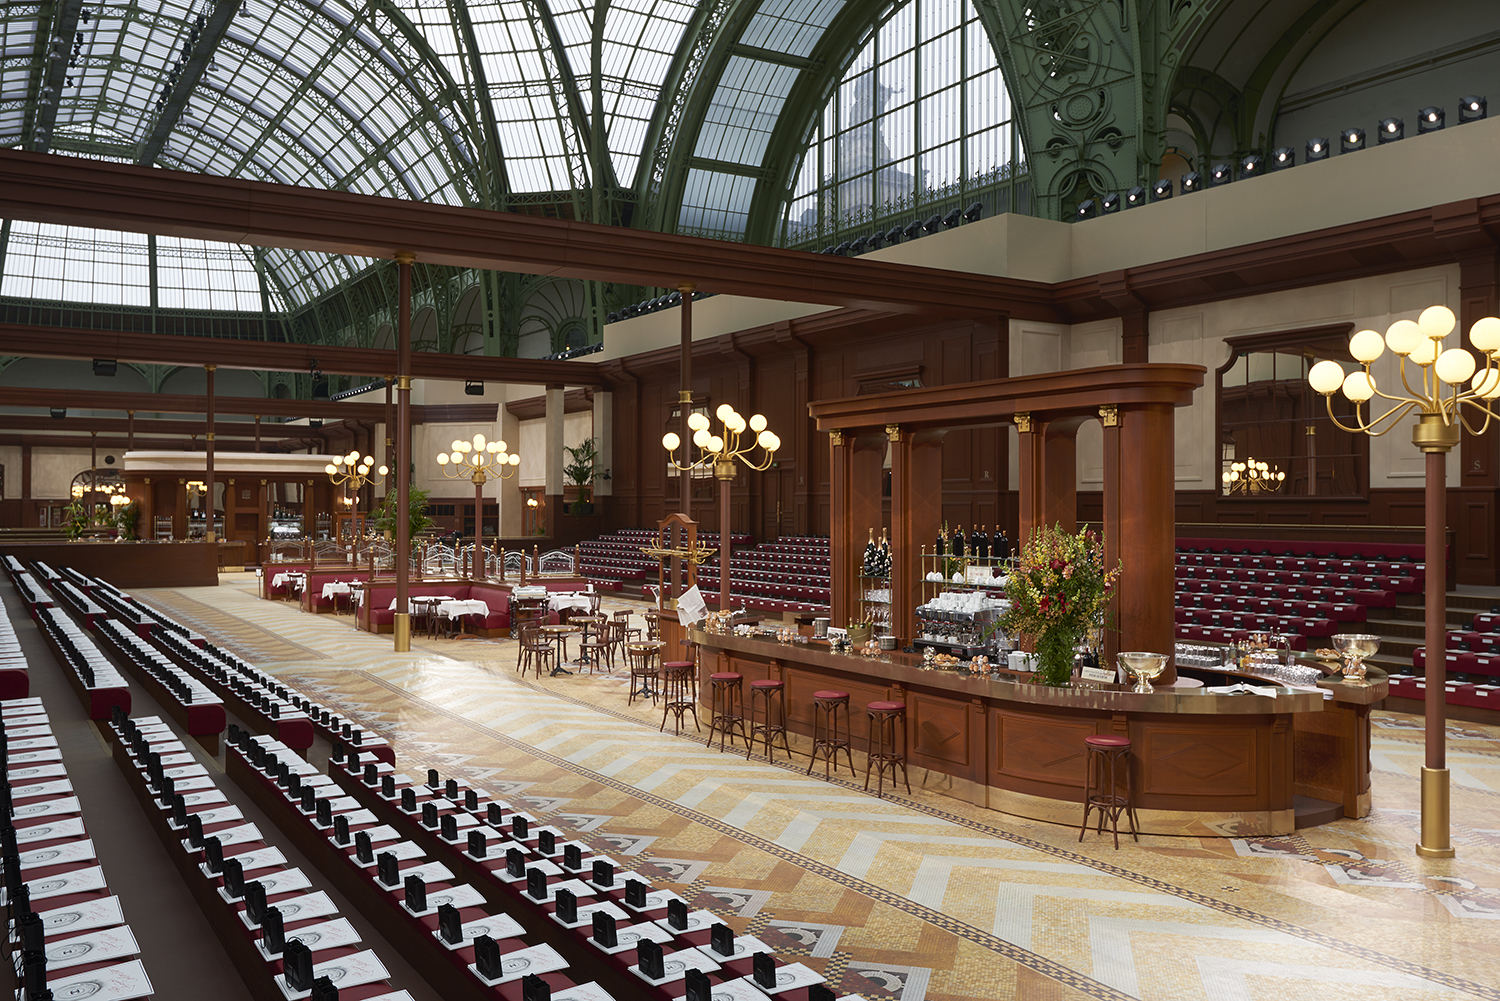 CHANEL_Fall-Winter_2015-2016 Ready-to-Wear_collection_fabulous_muses_2015 trends_chanel_brasserie (1)